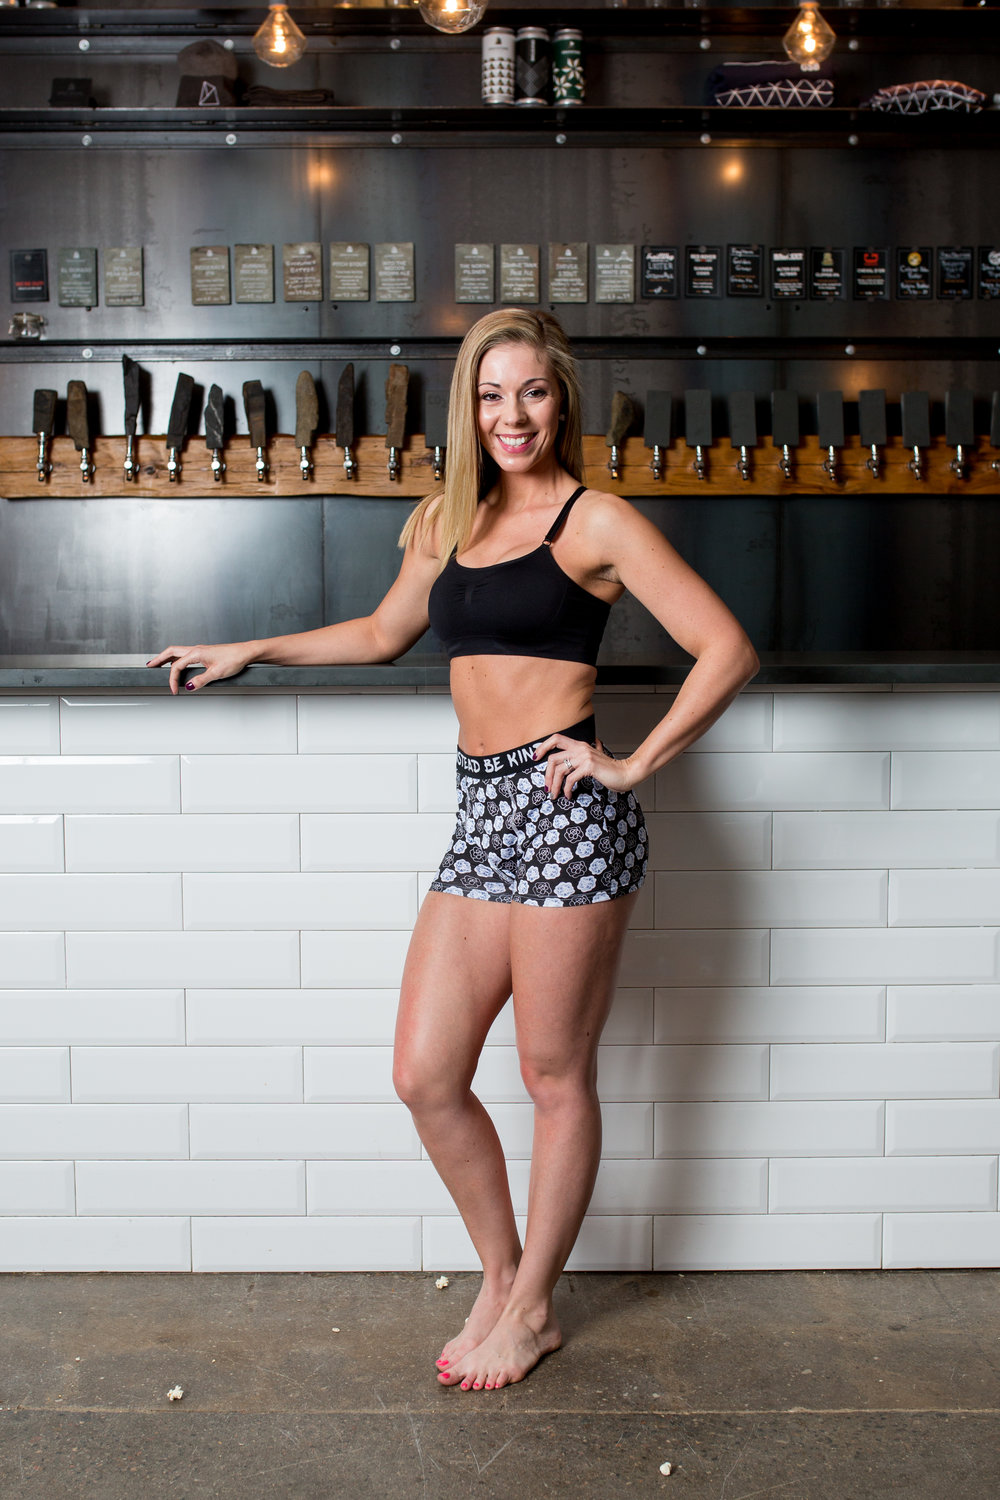 Photography: Mag Hood l Kindness Model: Amanda Brown l Location: Graystone Brewing Styling/Boxers: Dee Silkie